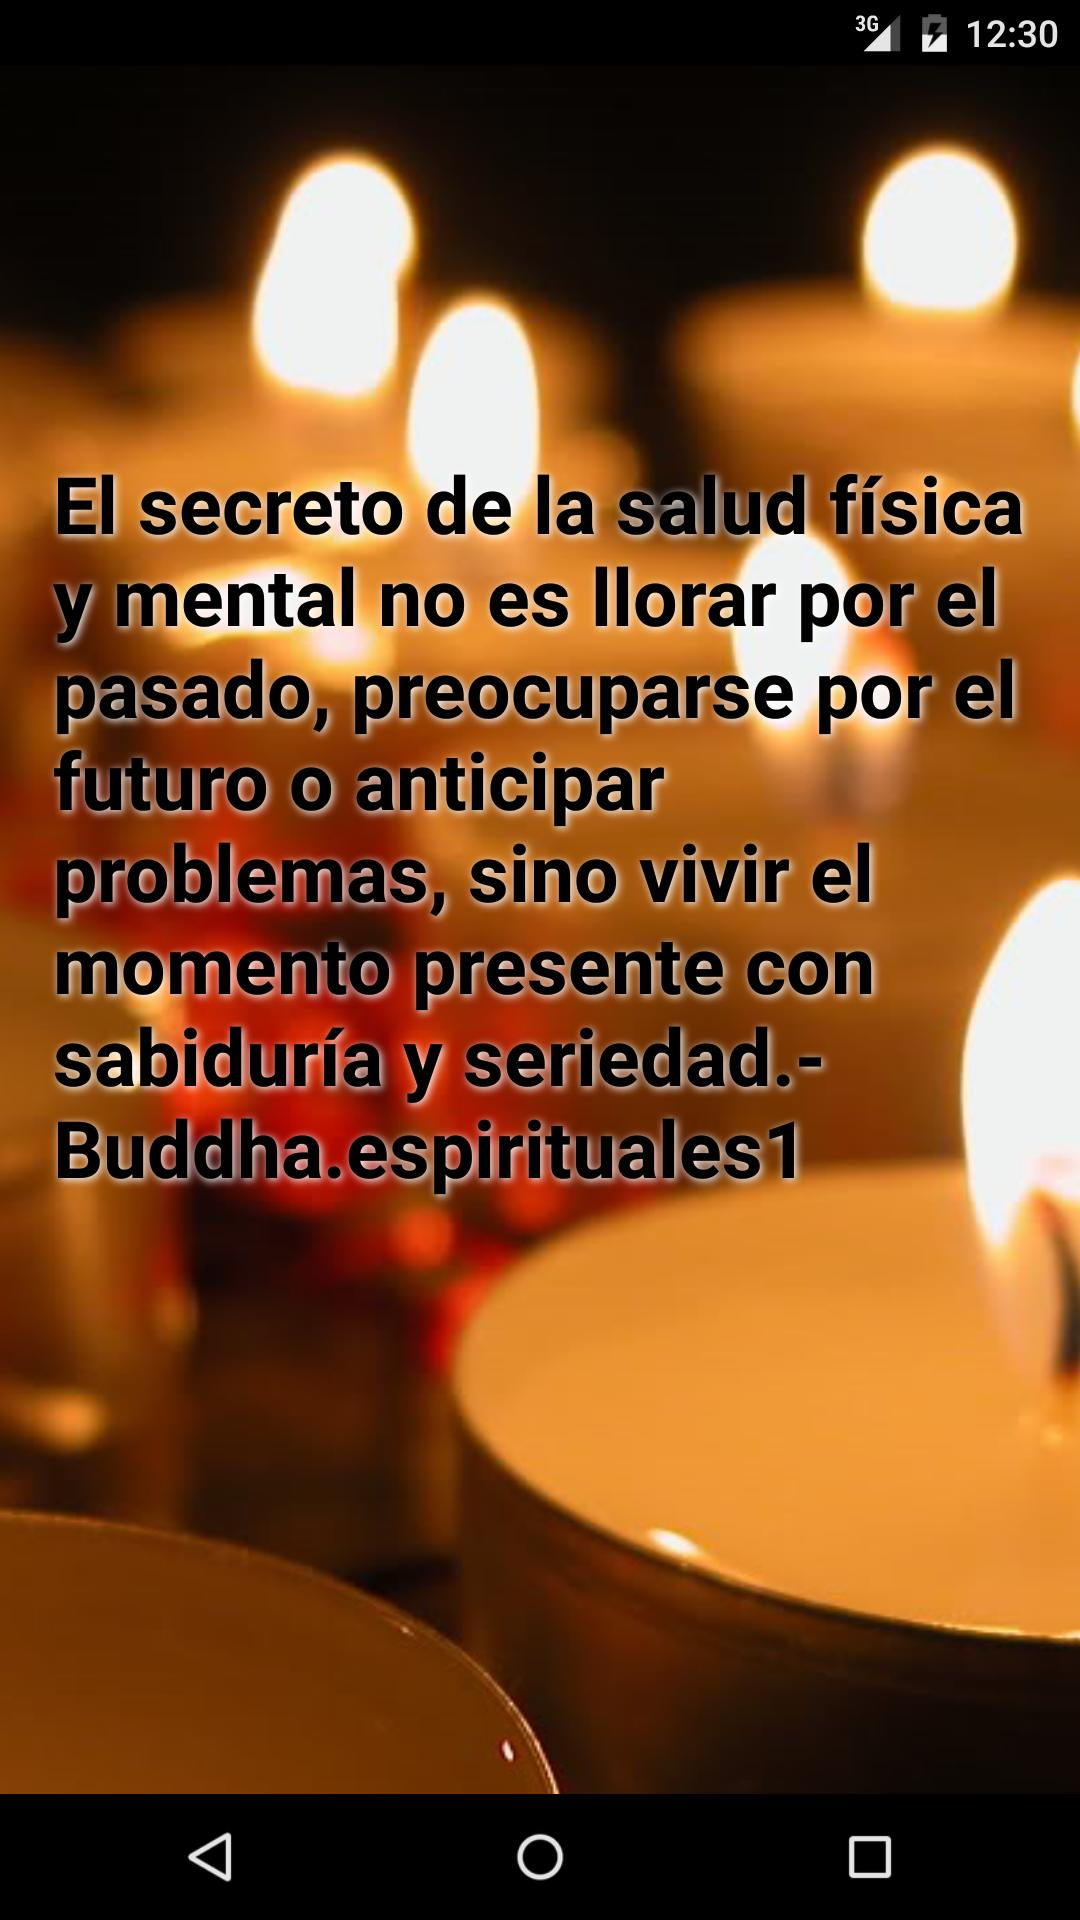 Mindfulness Frases Y Audios For Android Apk Download